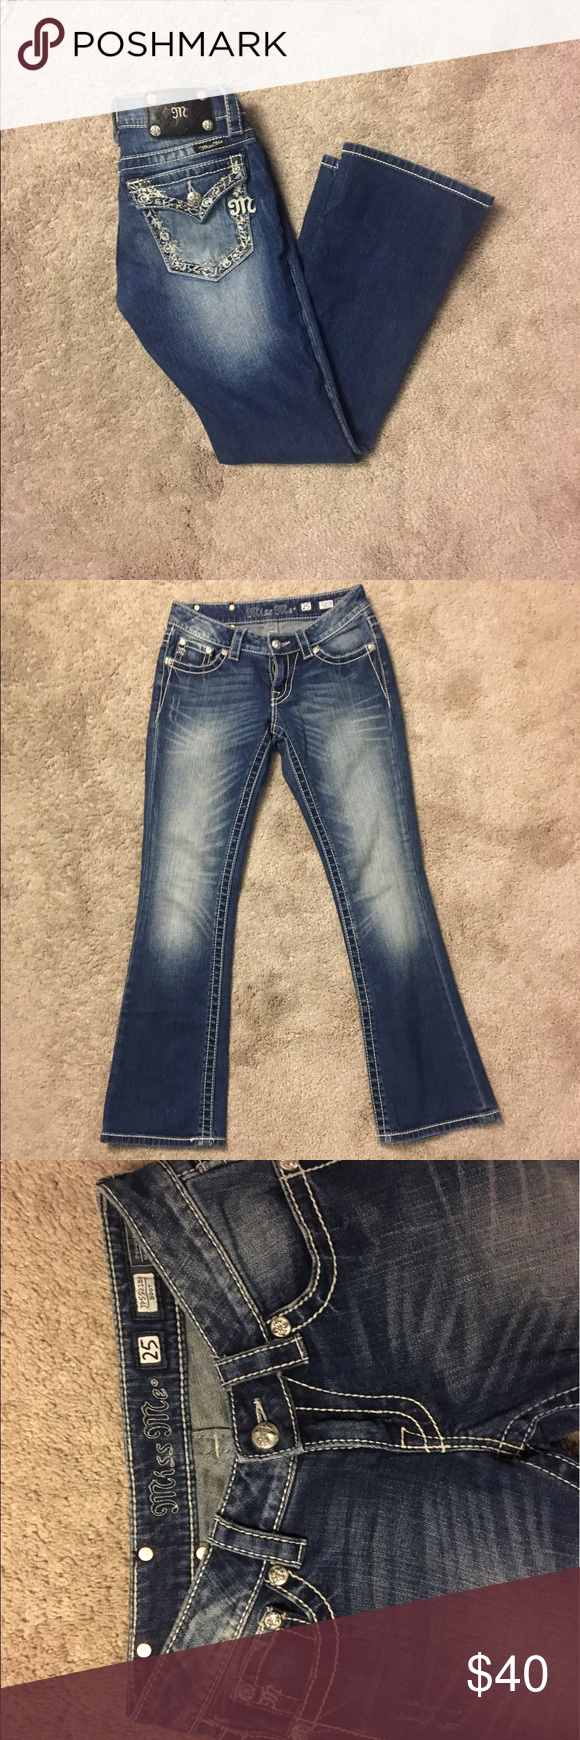 Miss Me Boot Cut Jeans Miss Me Boot Cut Jeans, excellent condition besides a small mark on the back that isn't very noticeable while wearing, size 25. Bundle and save! Miss Me Jeans Boot Cut